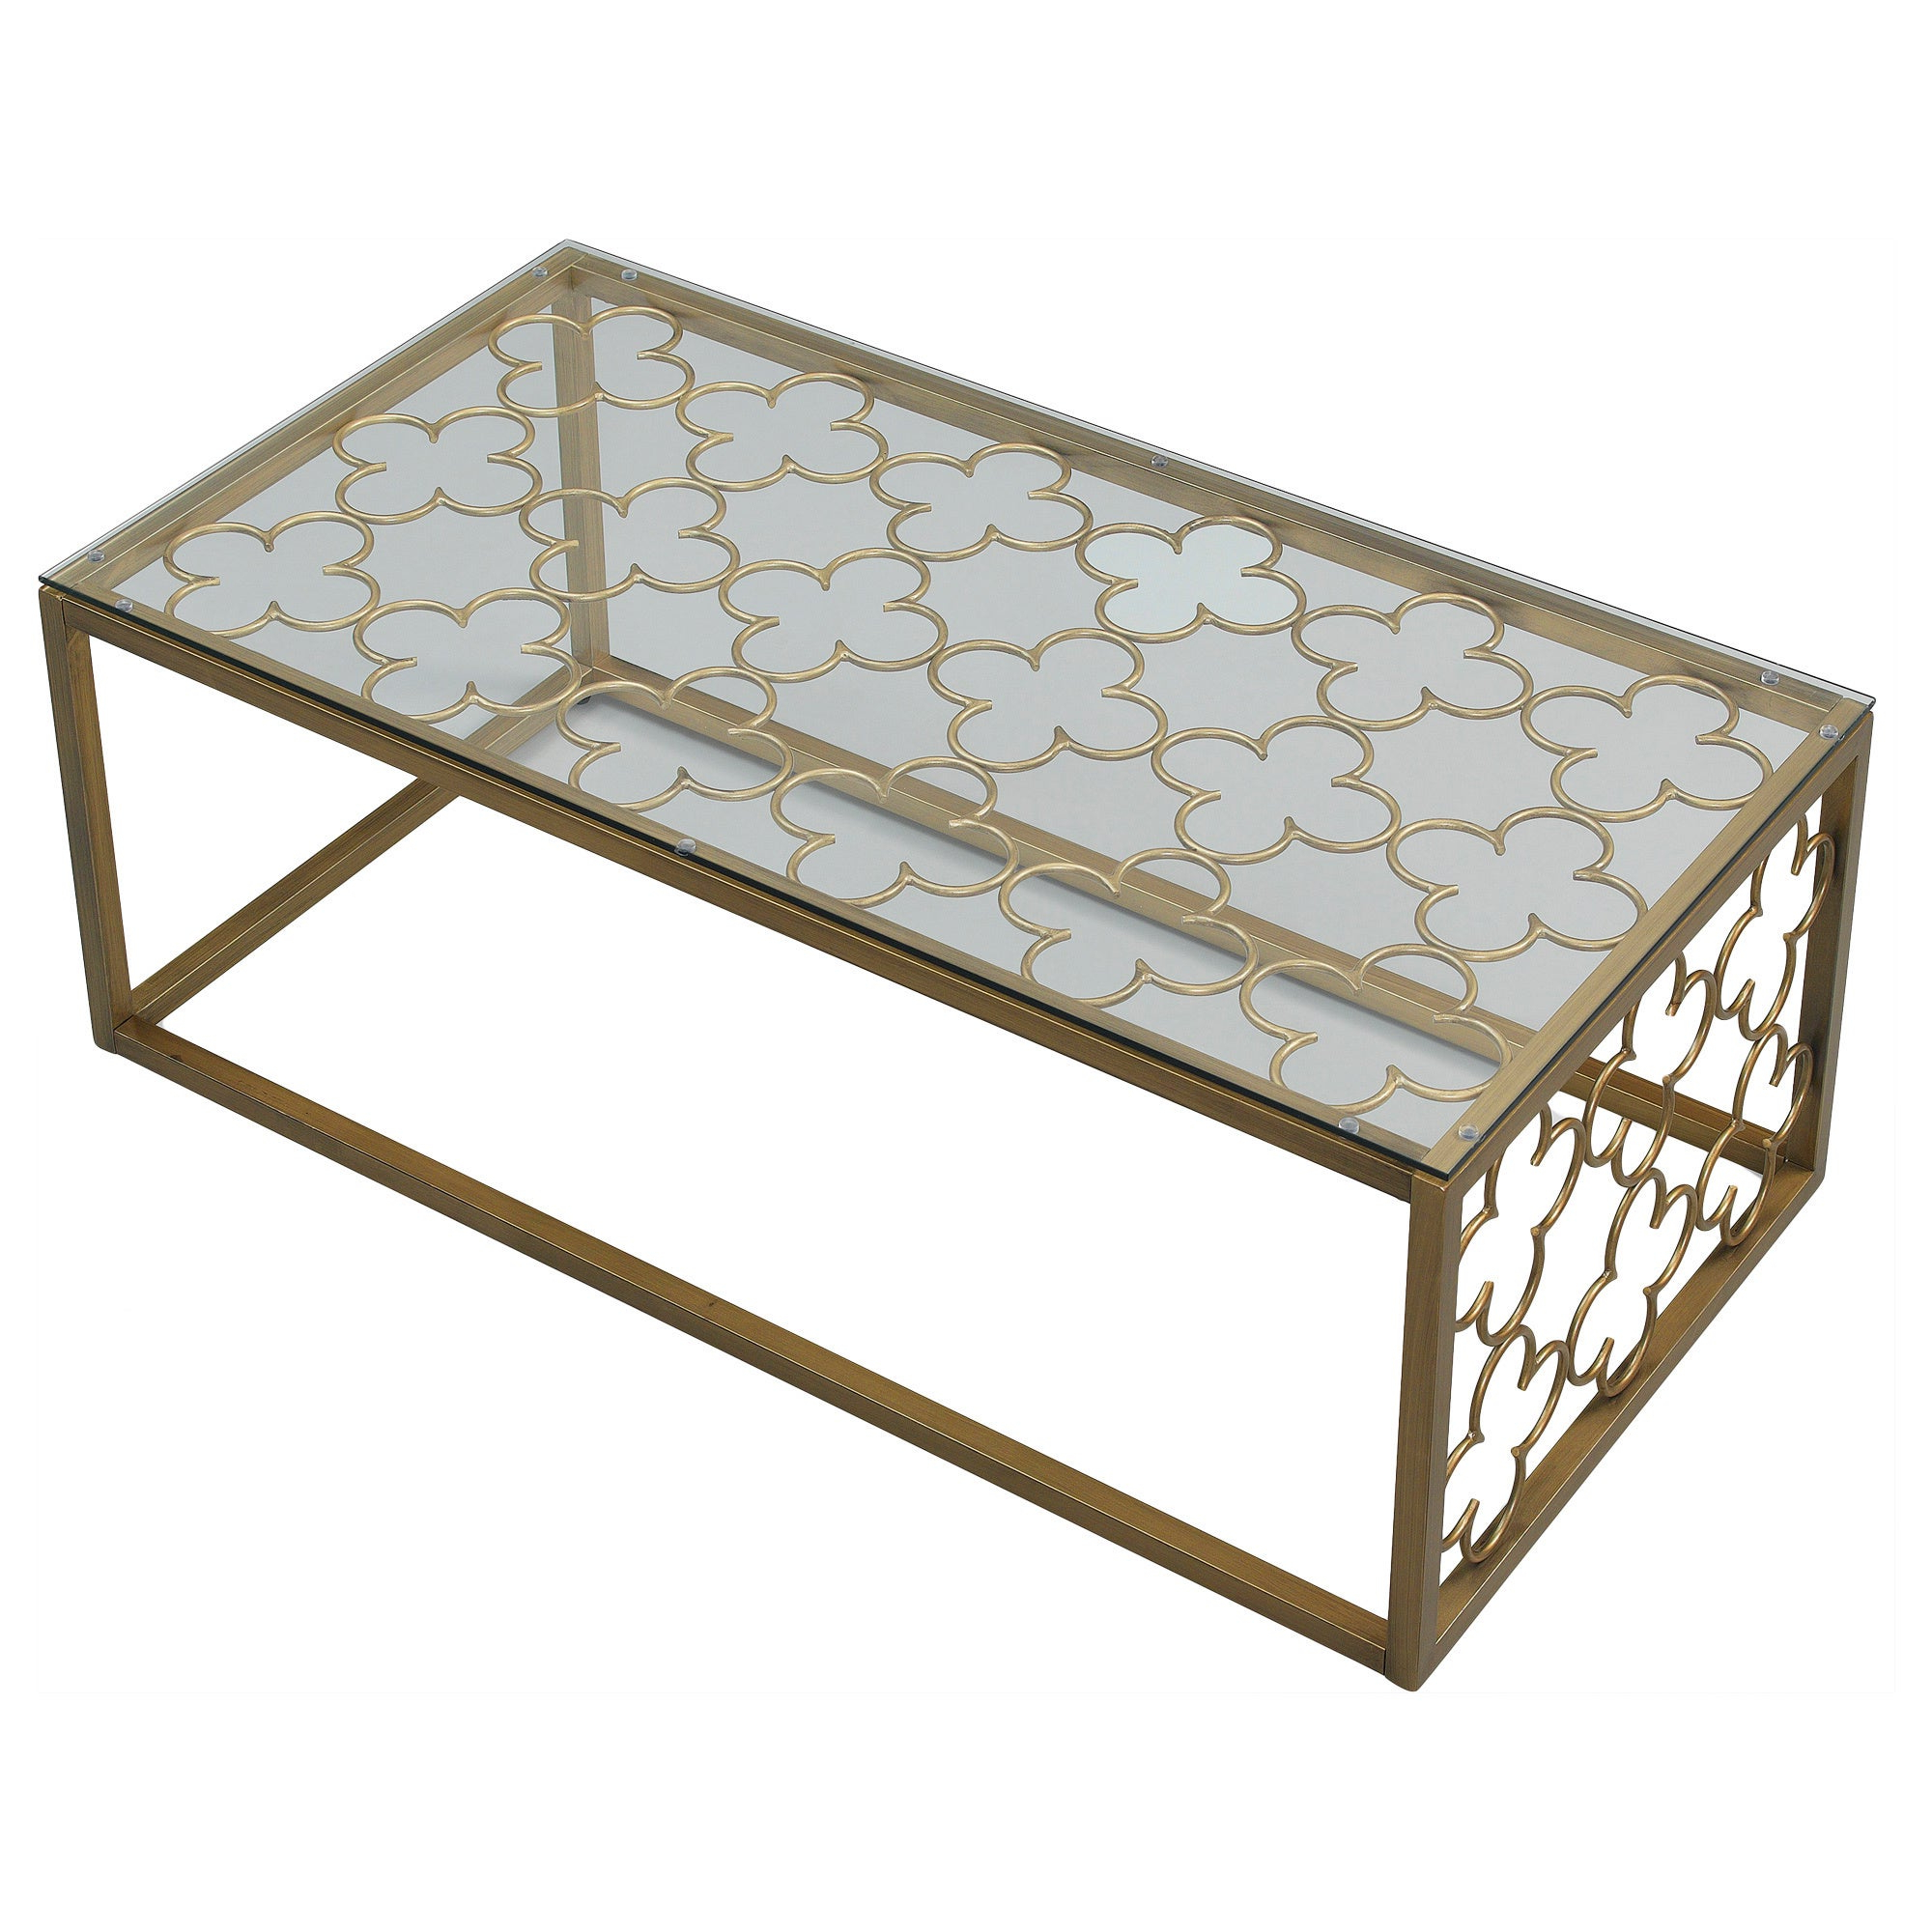 Best And Newest The Curated Nomad Quatrefoil Goldtone Metal And Glass Coffee Tables For The Curated Nomad Quatrefoil Goldtone Metal And Glass Coffee Table (View 2 of 20)